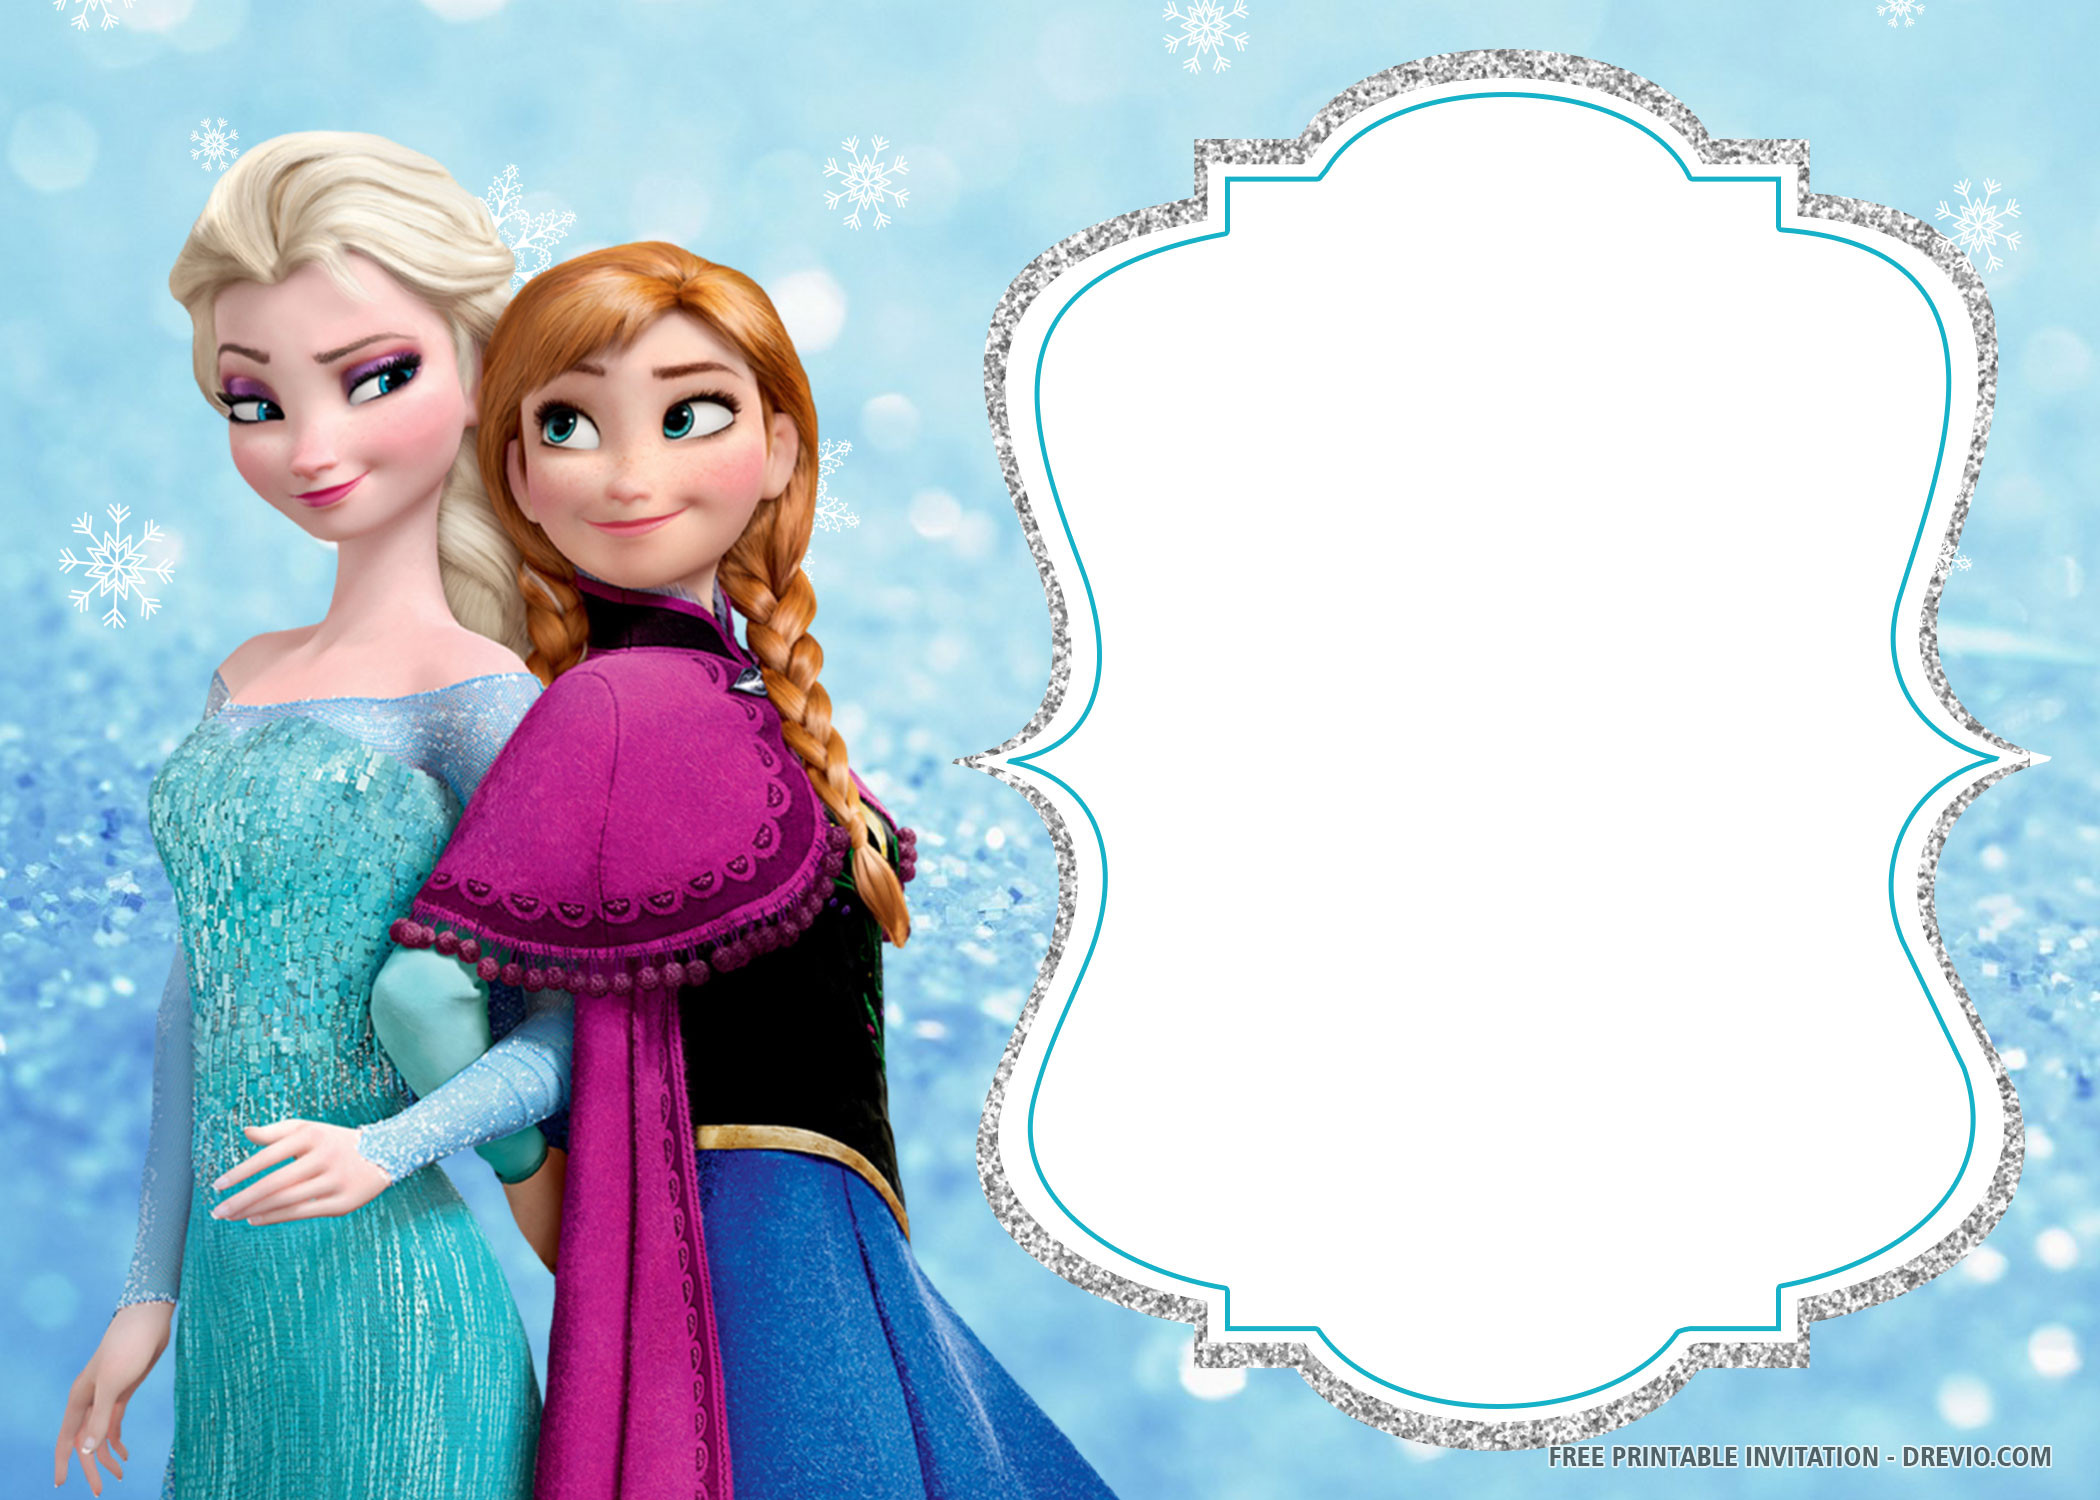 Frozen Invitations Printable Free Free Printable Frozen Anna and Elsa Invitation Templates